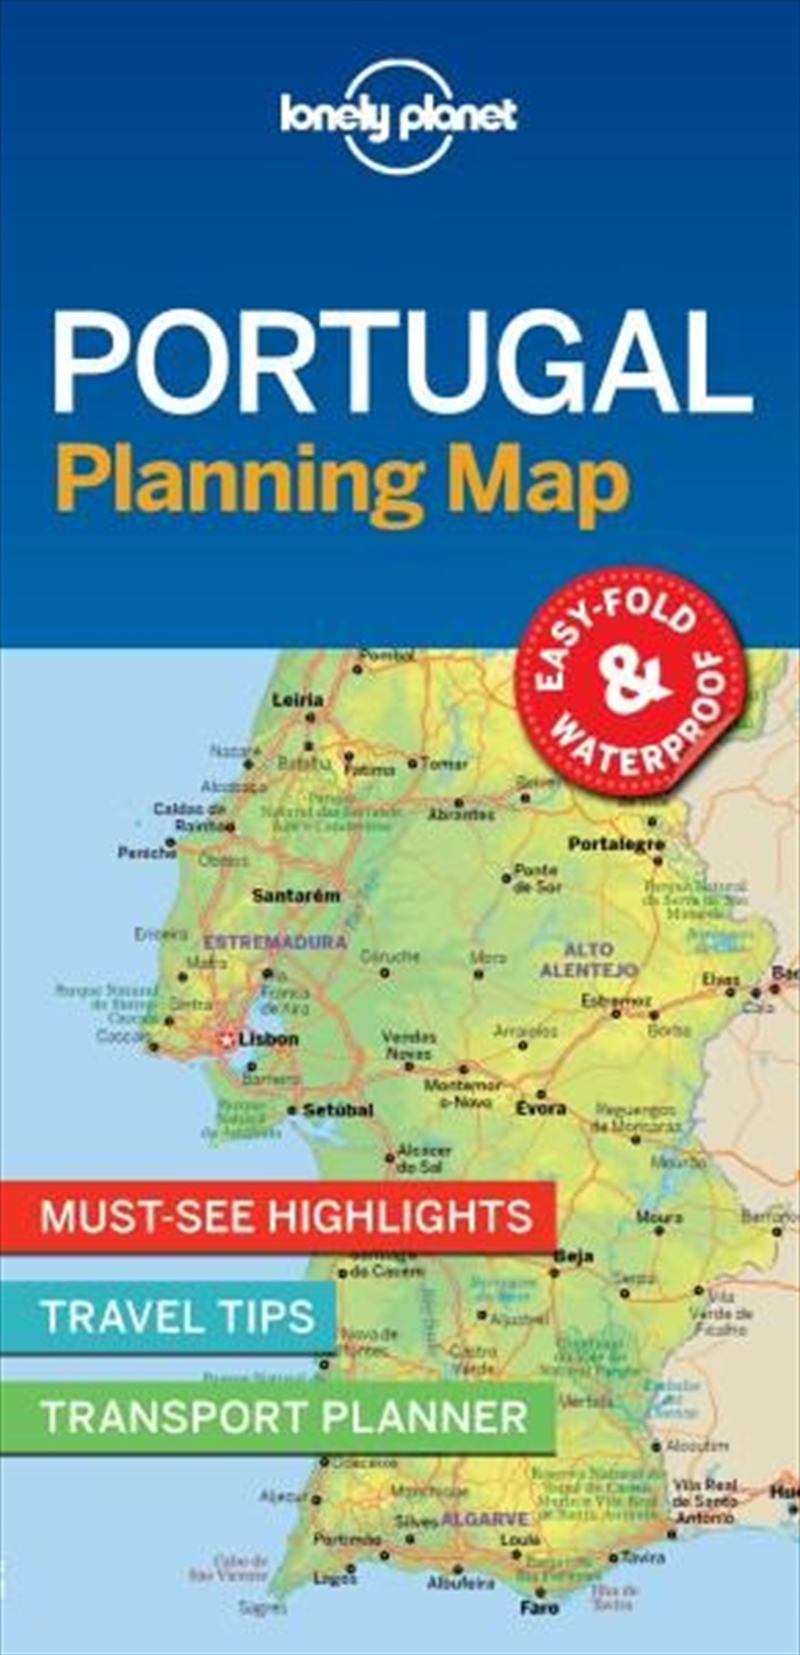 Lonely Planet - Portugal Planning Map | Sheet Map